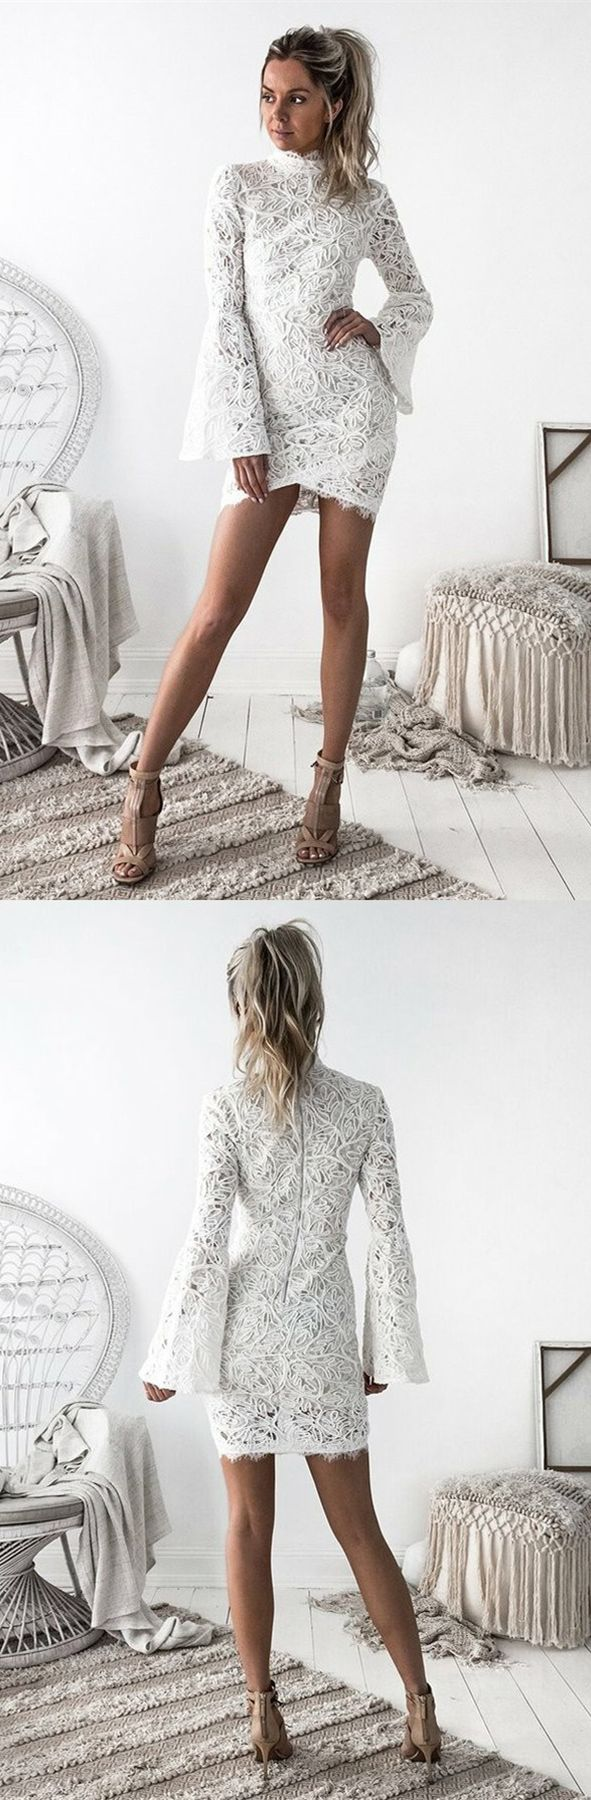 long sleeve short homecoming dresses,unique ivory lace prom dress,simple cocktail dress,fashiom party dress